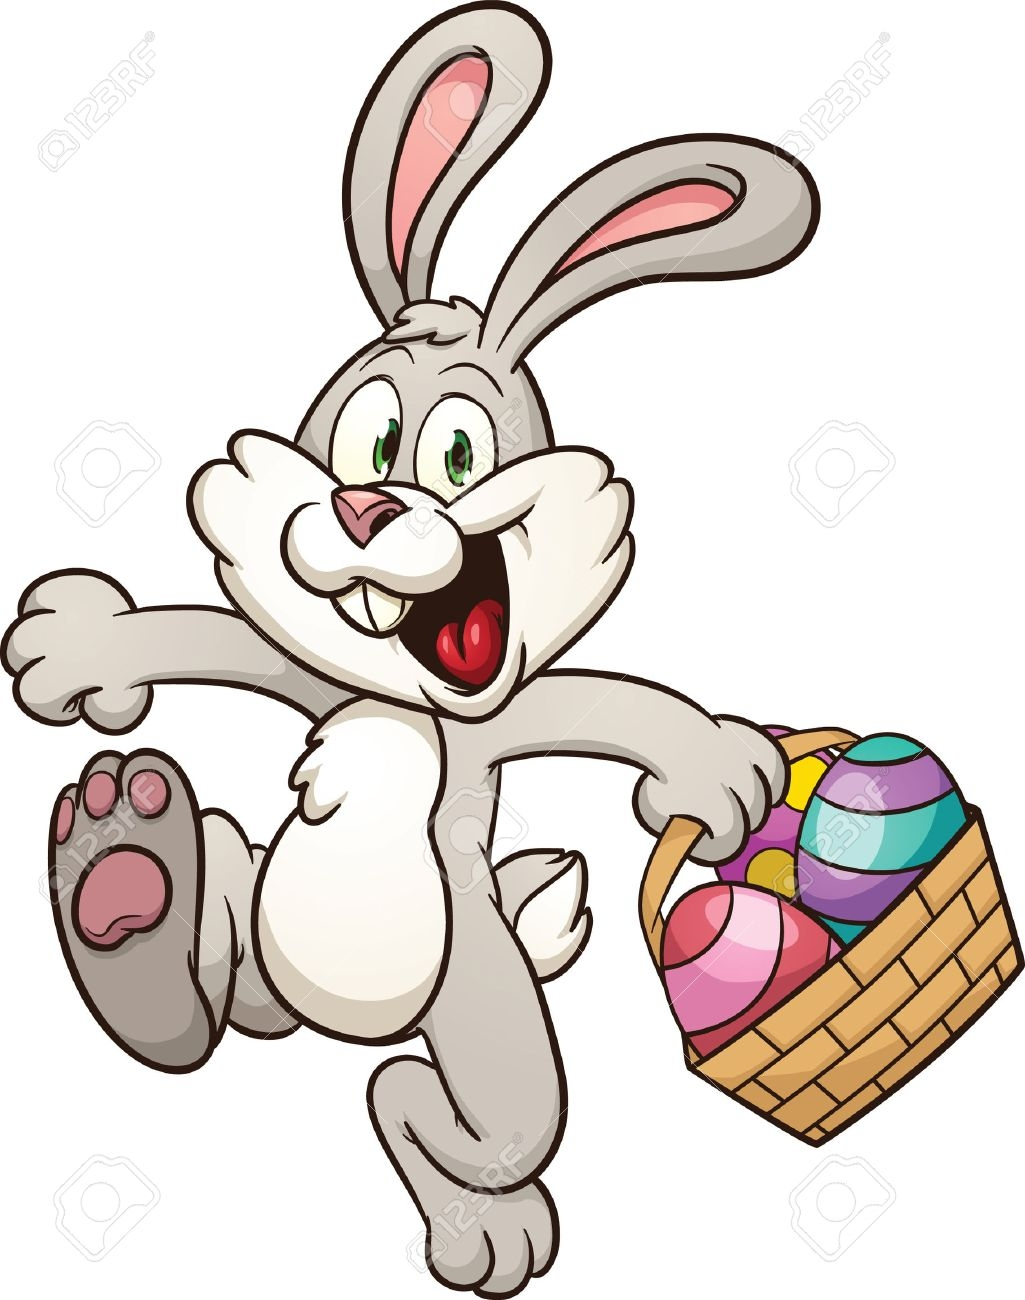 Easter Bunny Clipart at GetDrawings.com.